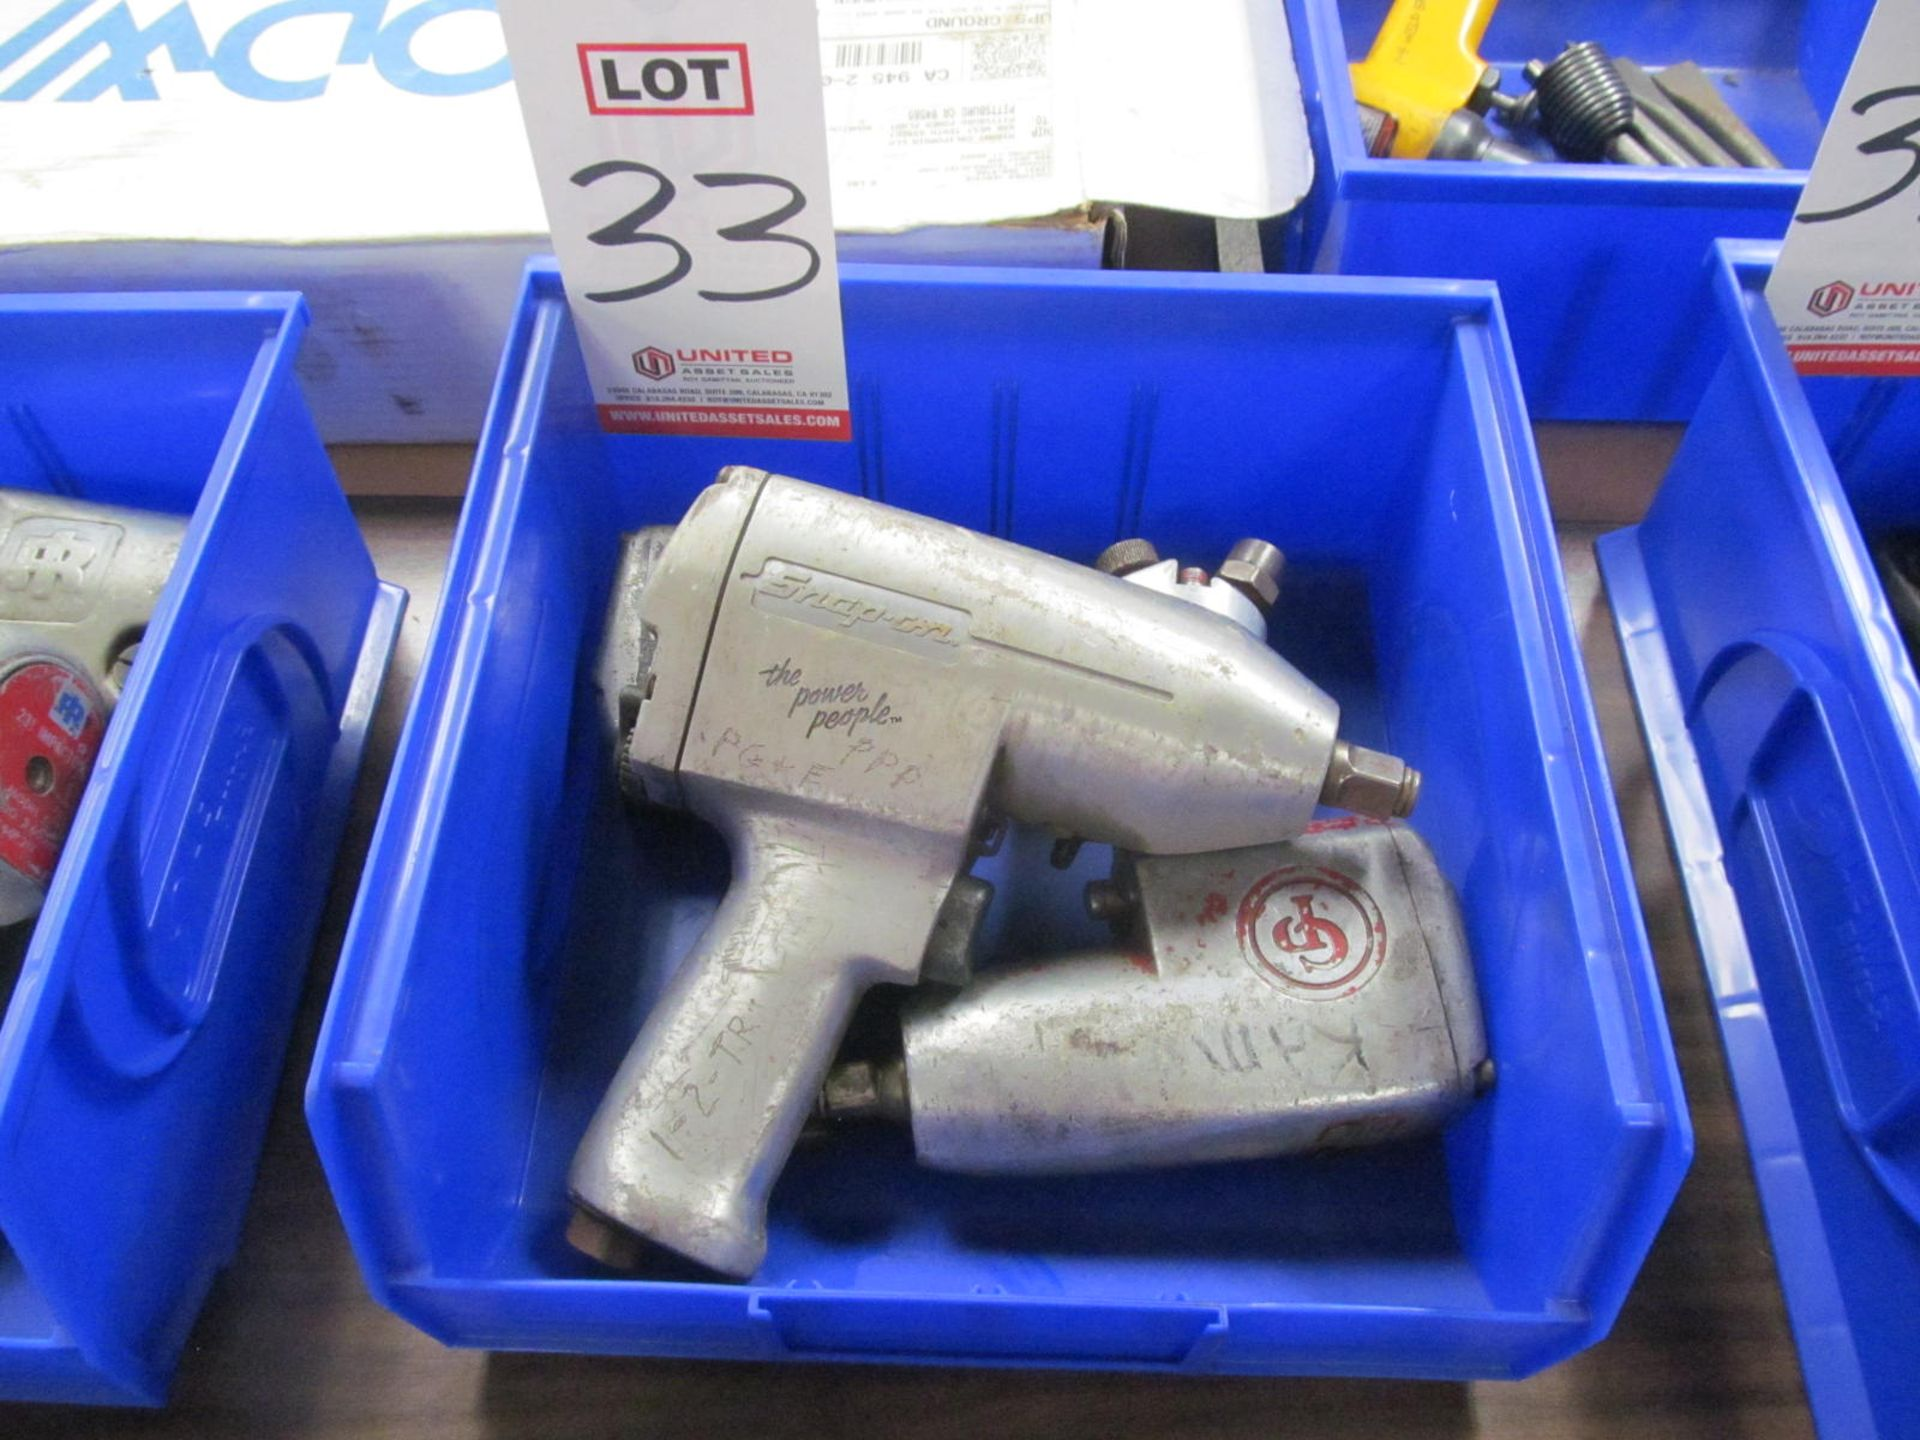 """Lot 33 - LOT - (3) 1/2"""" IMPACTS: (2) CP #9547 AND (1) SNAP-ON #IM5100"""